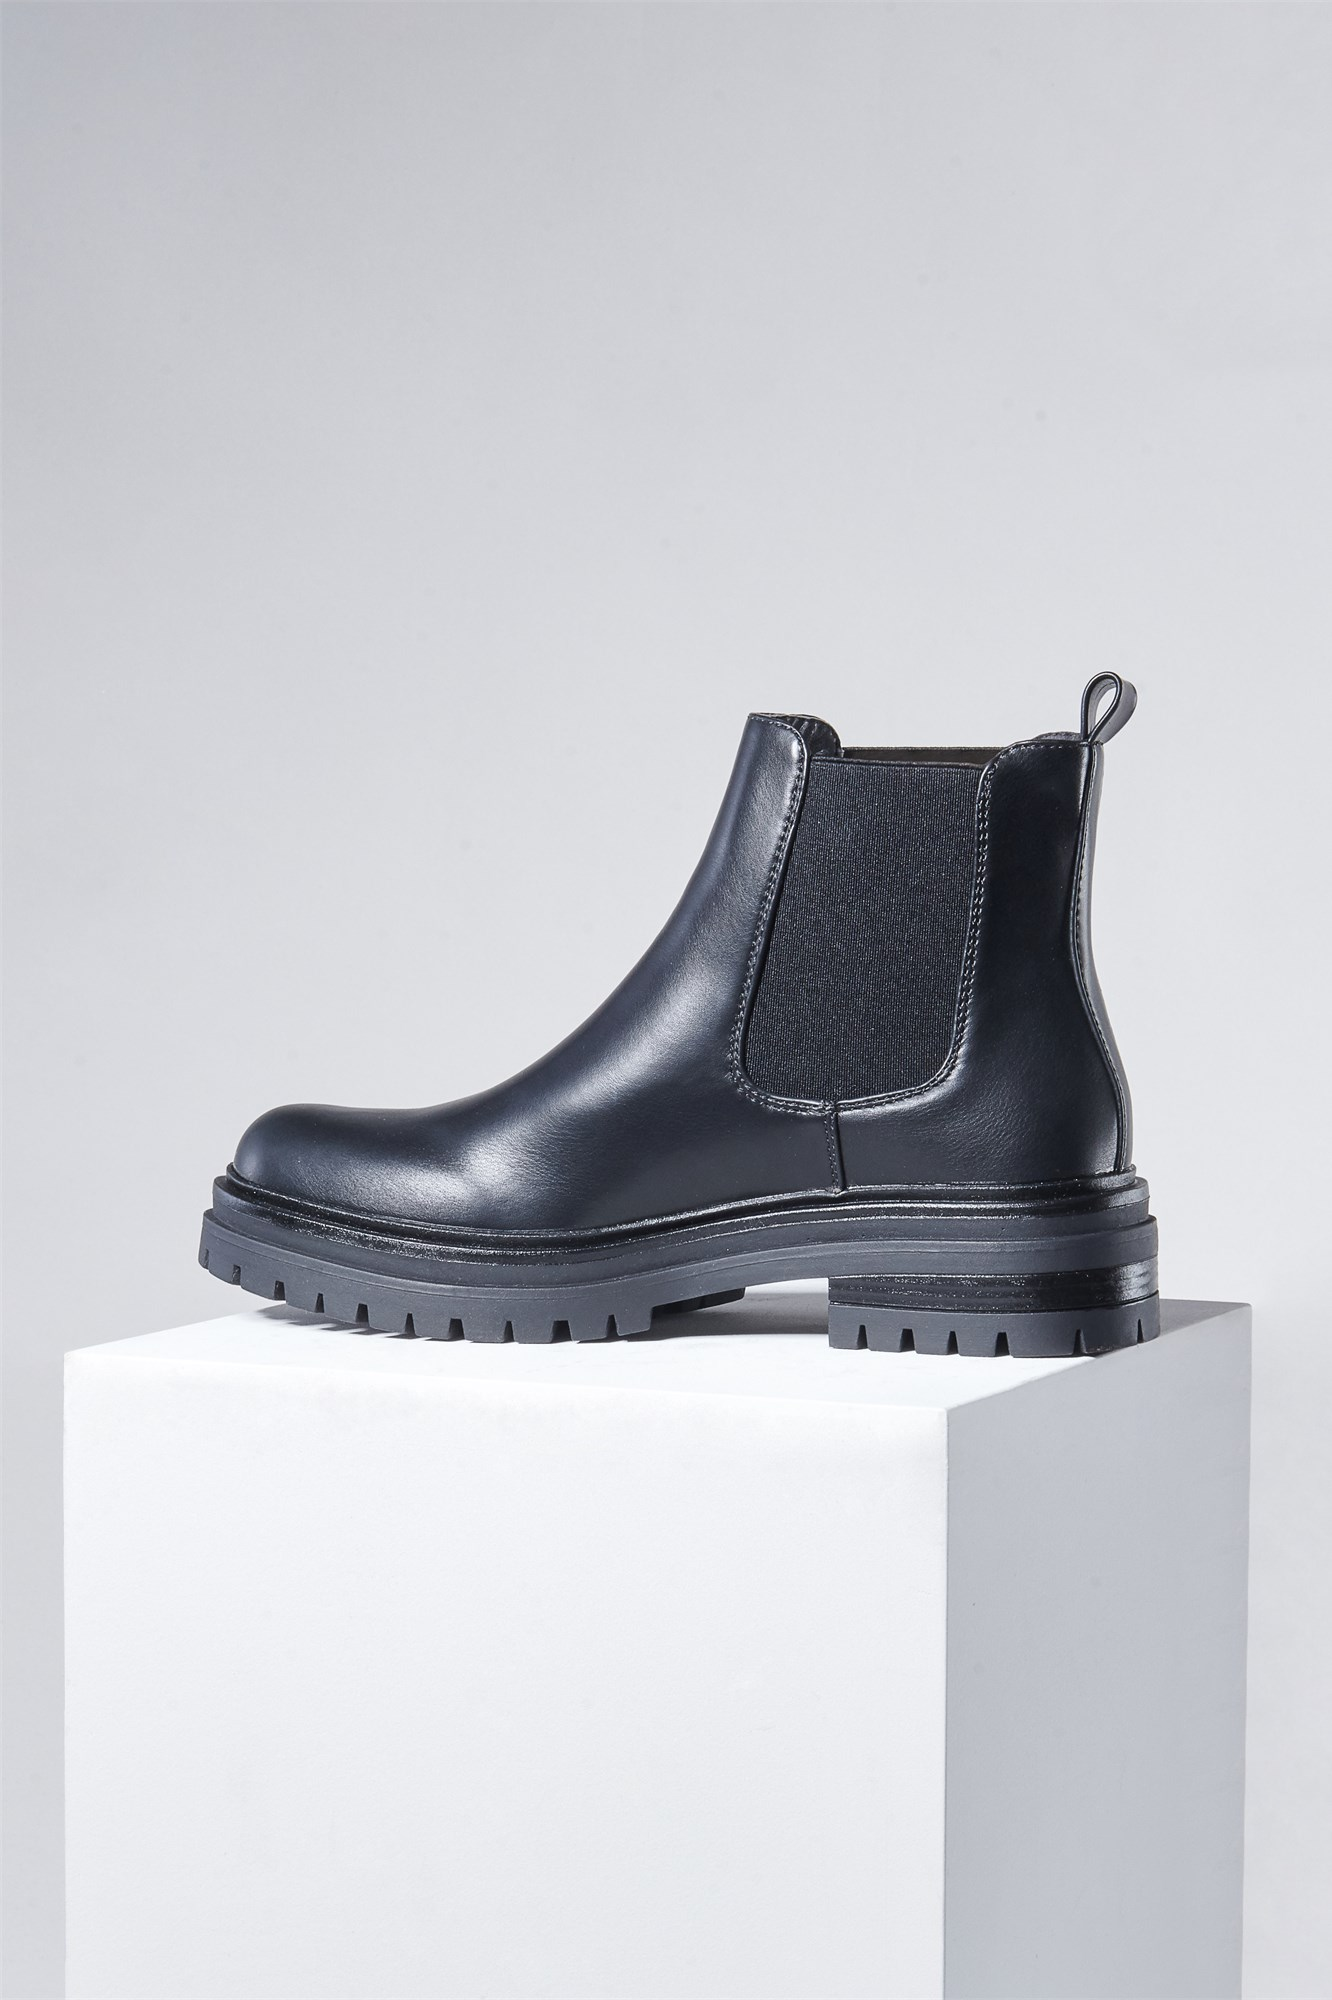 hot product low cost cost charm Steve Madden Billiee Boots